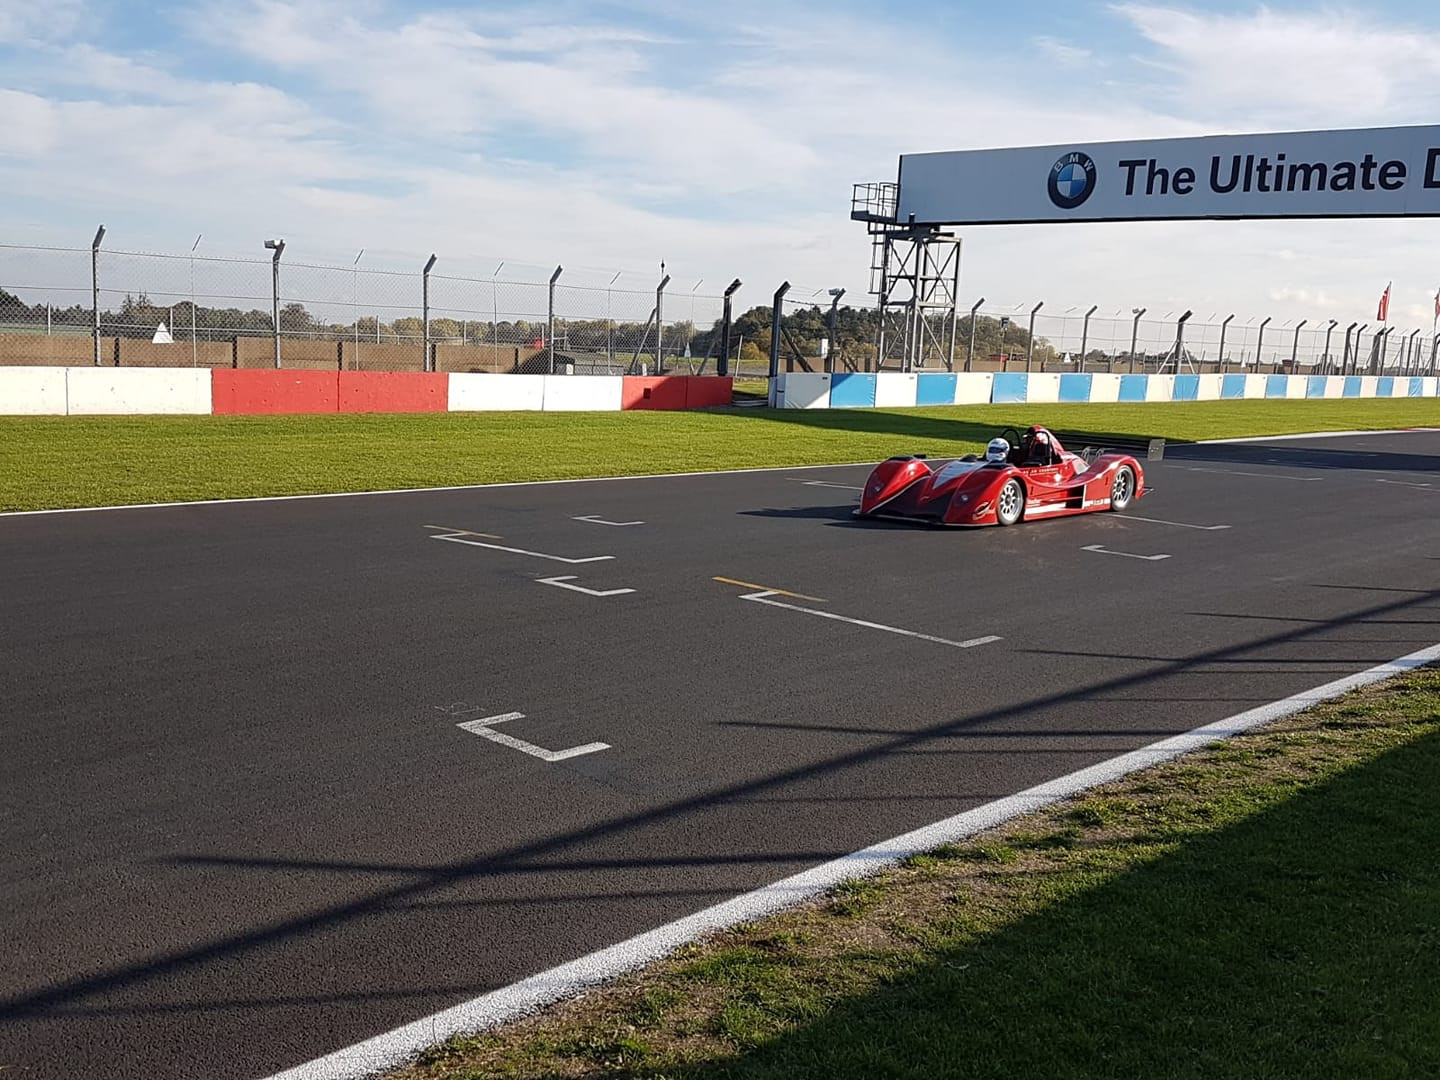 Palmersport JP1 at Donington Park